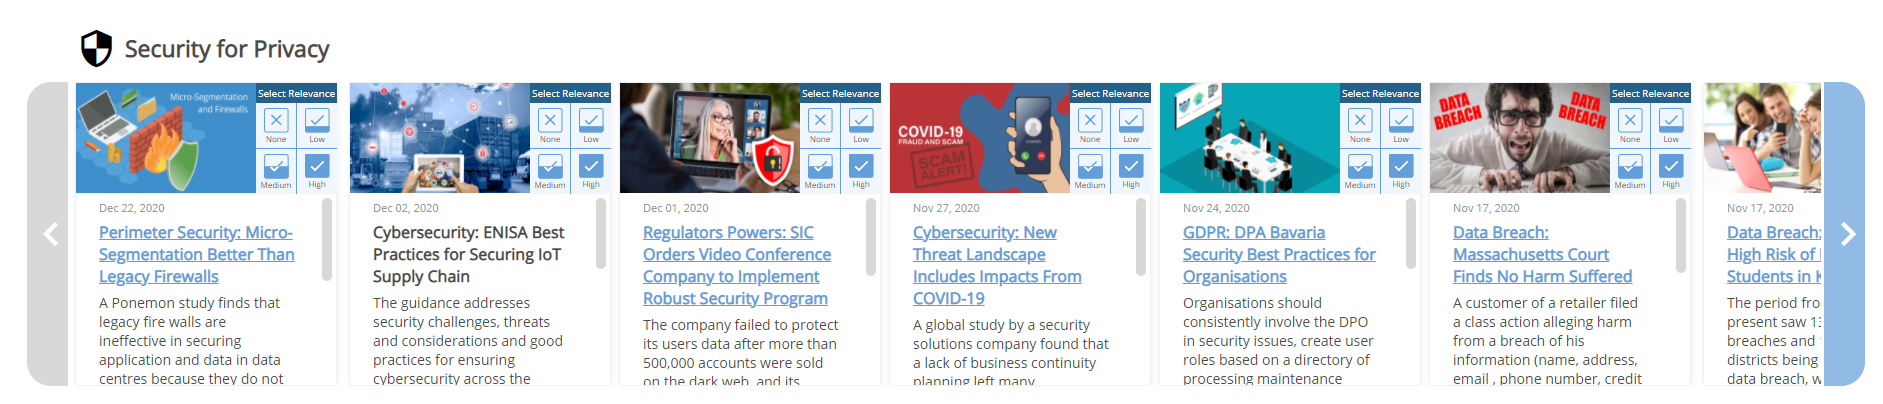 SNAPSHOT OF SECURITY RELATED STORIES